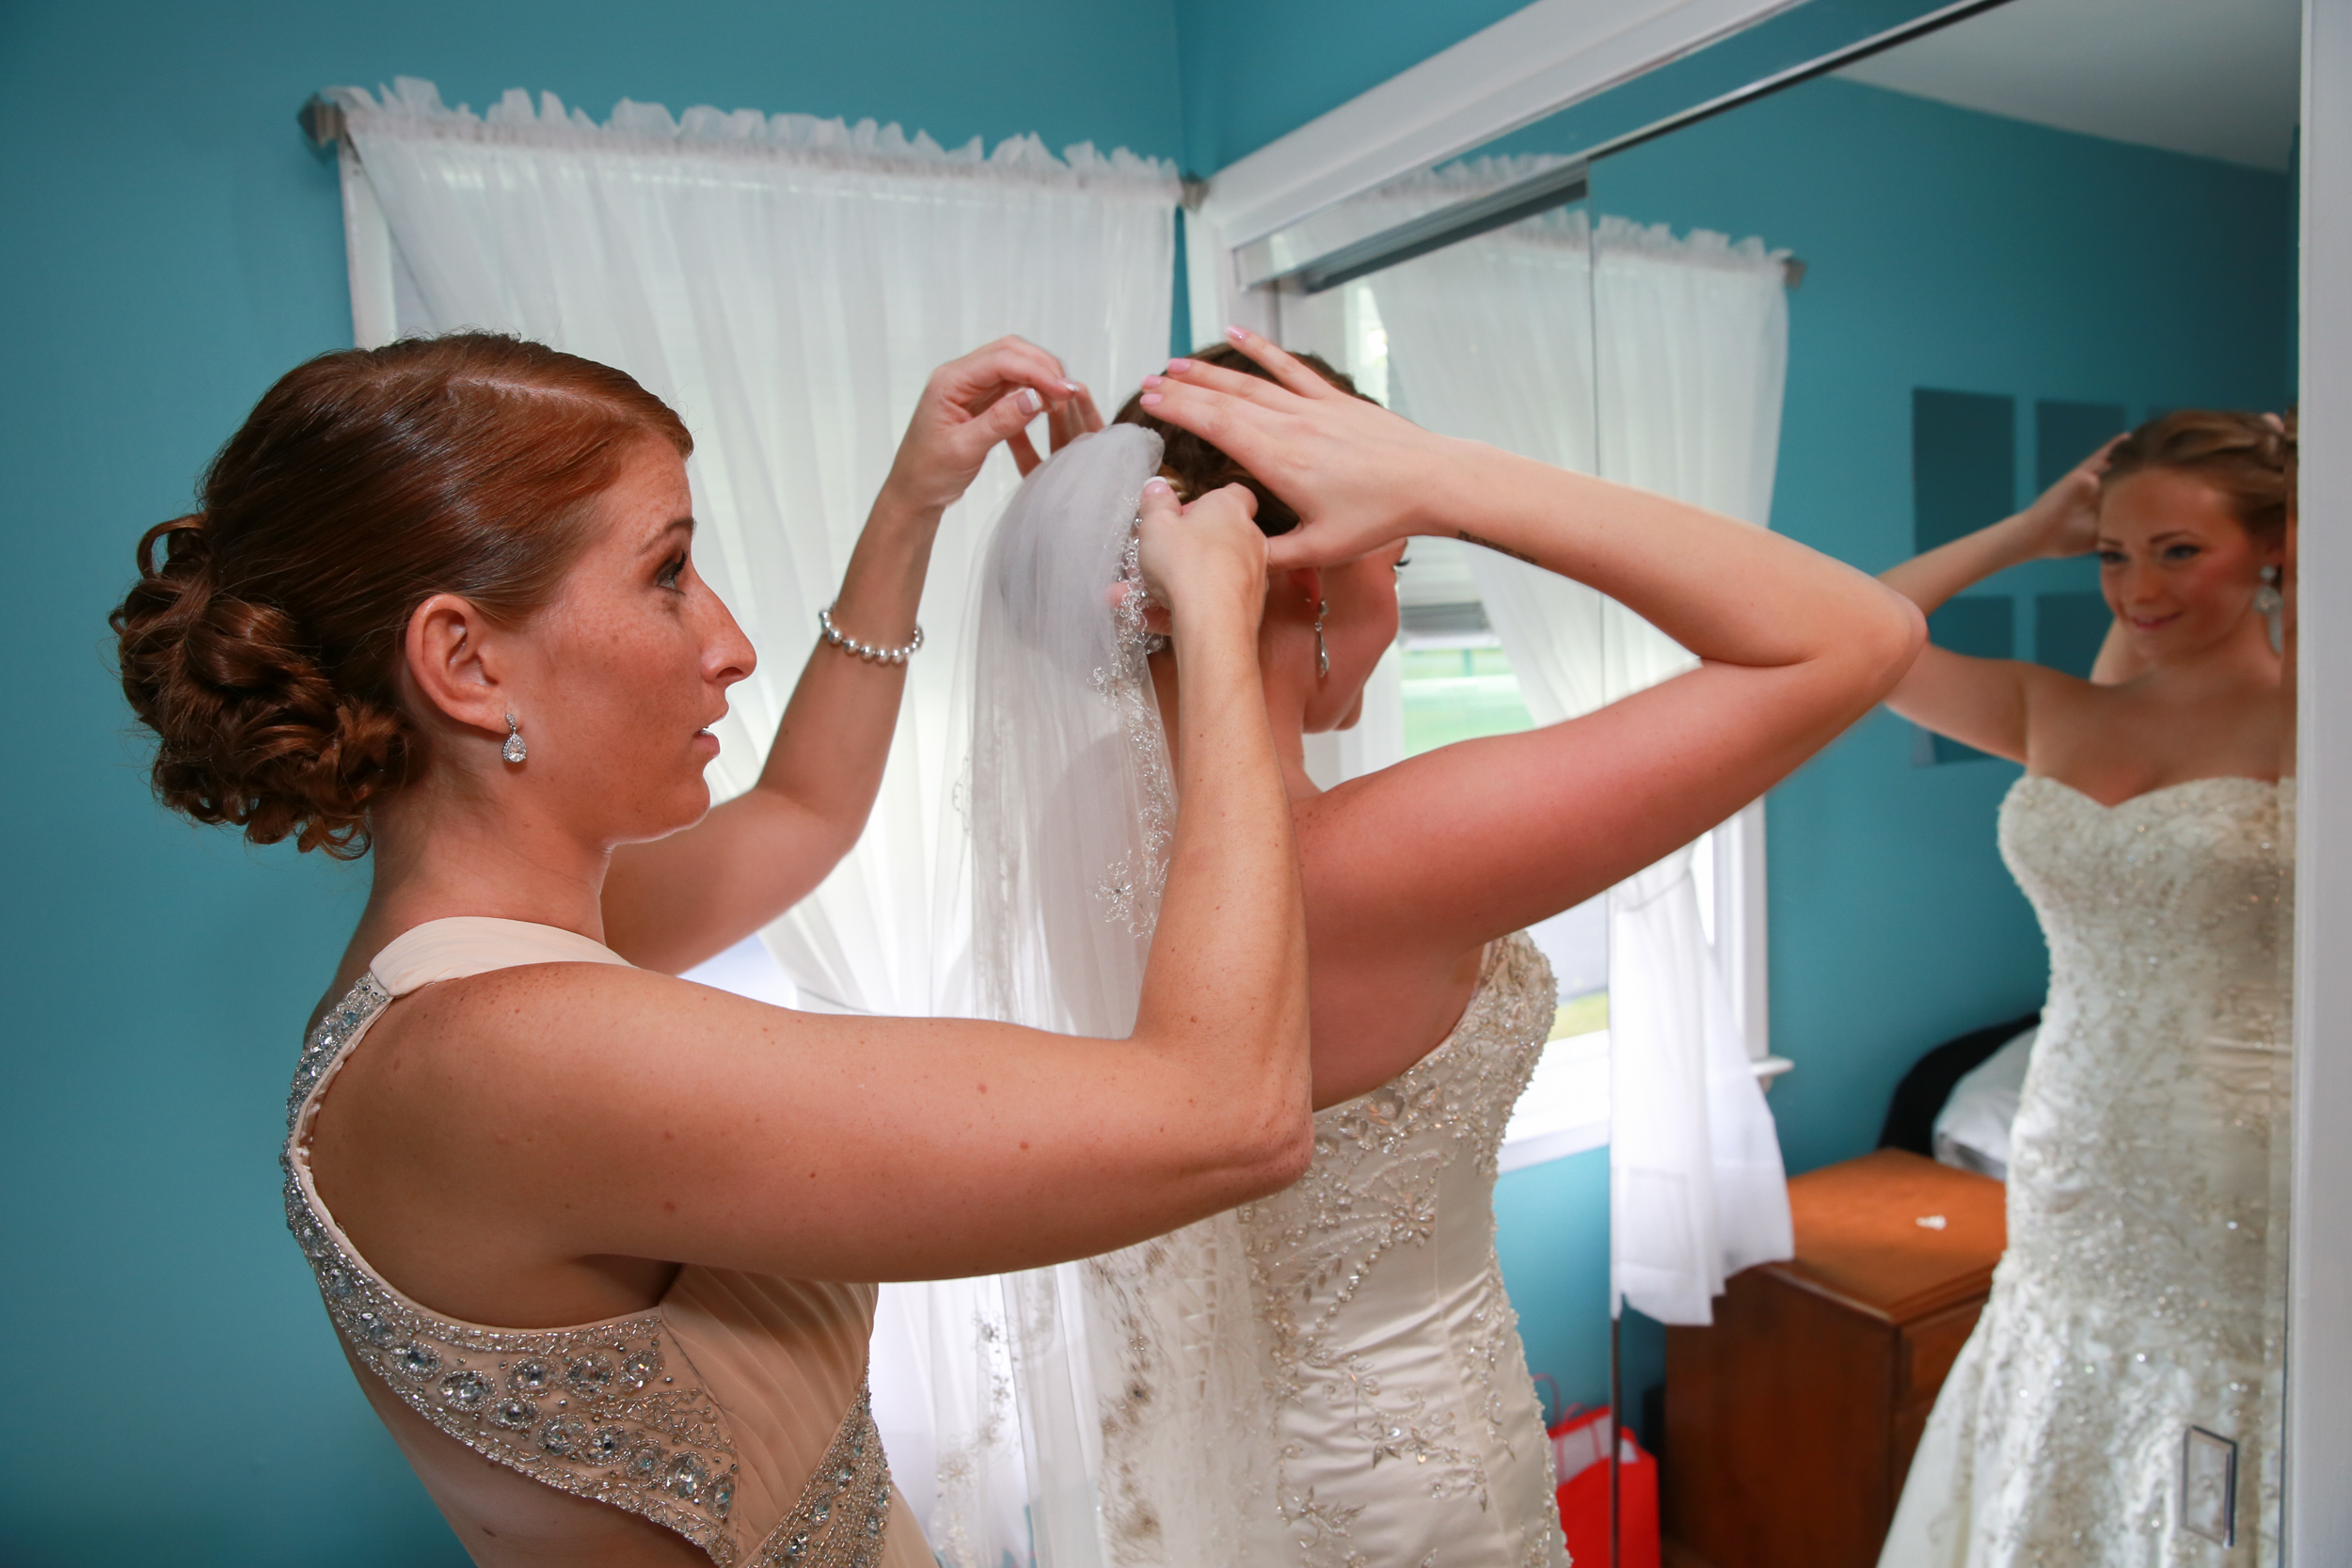 Maid of honor putting on brides veil.